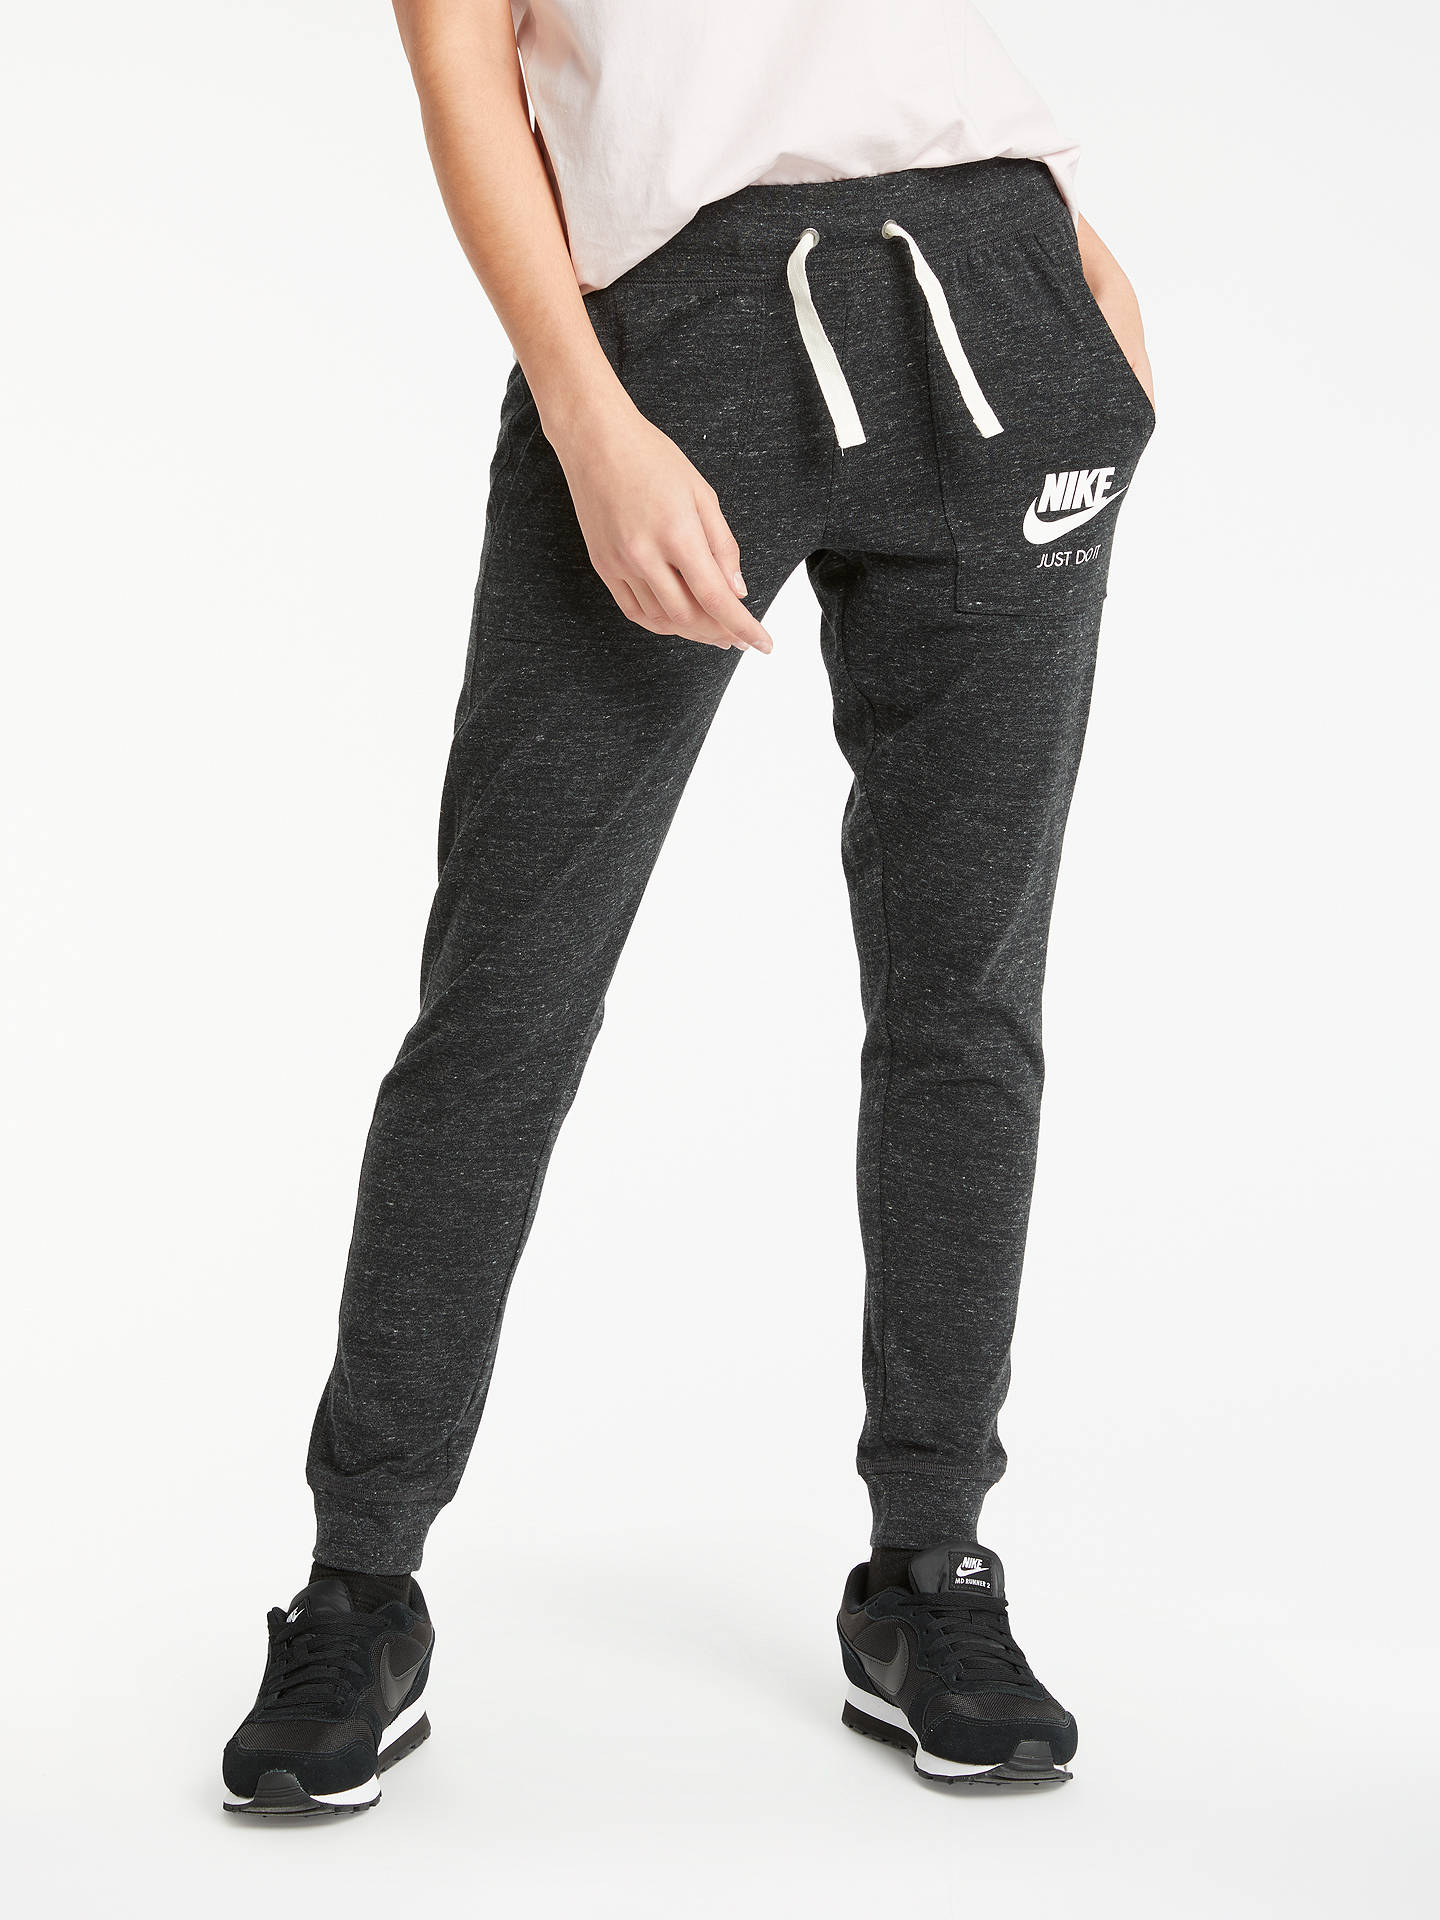 3ae3530bdbd4a Nike Sportswear Vintage Tracksuit Bottoms, Anthracite at John Lewis ...